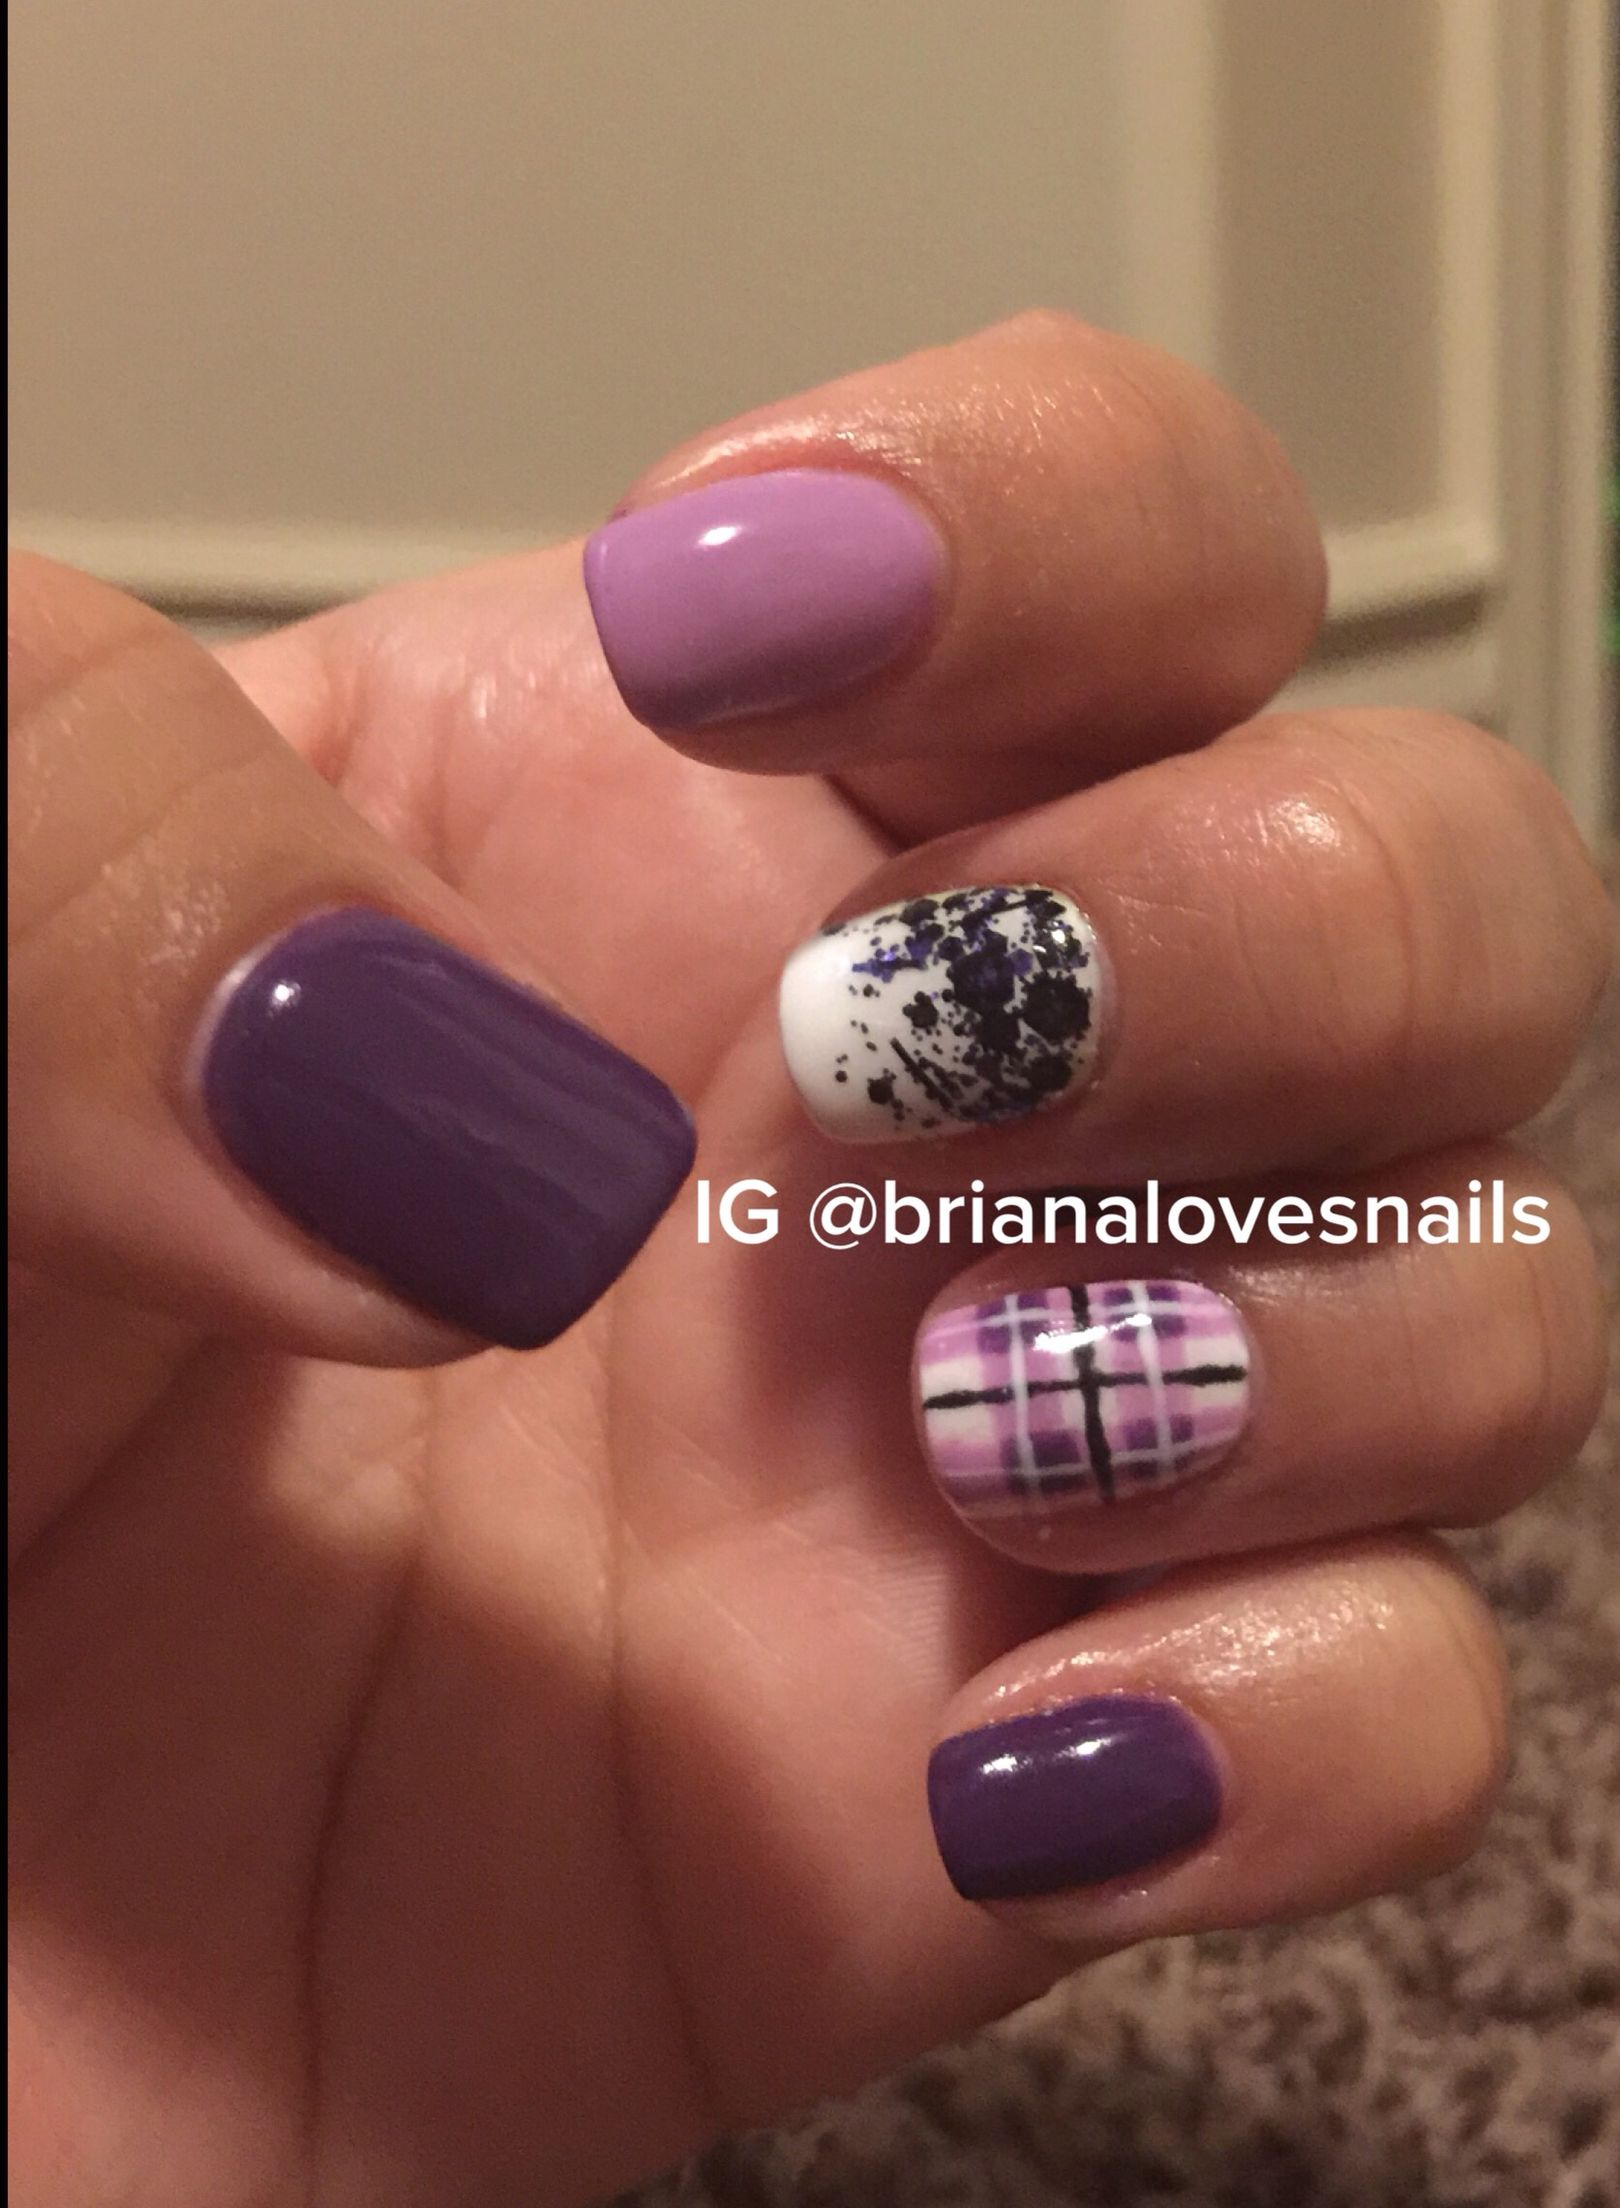 Gel polish, Plaid nail art, Ezflow Trugel, OPI Gel Color, IBD Just ...